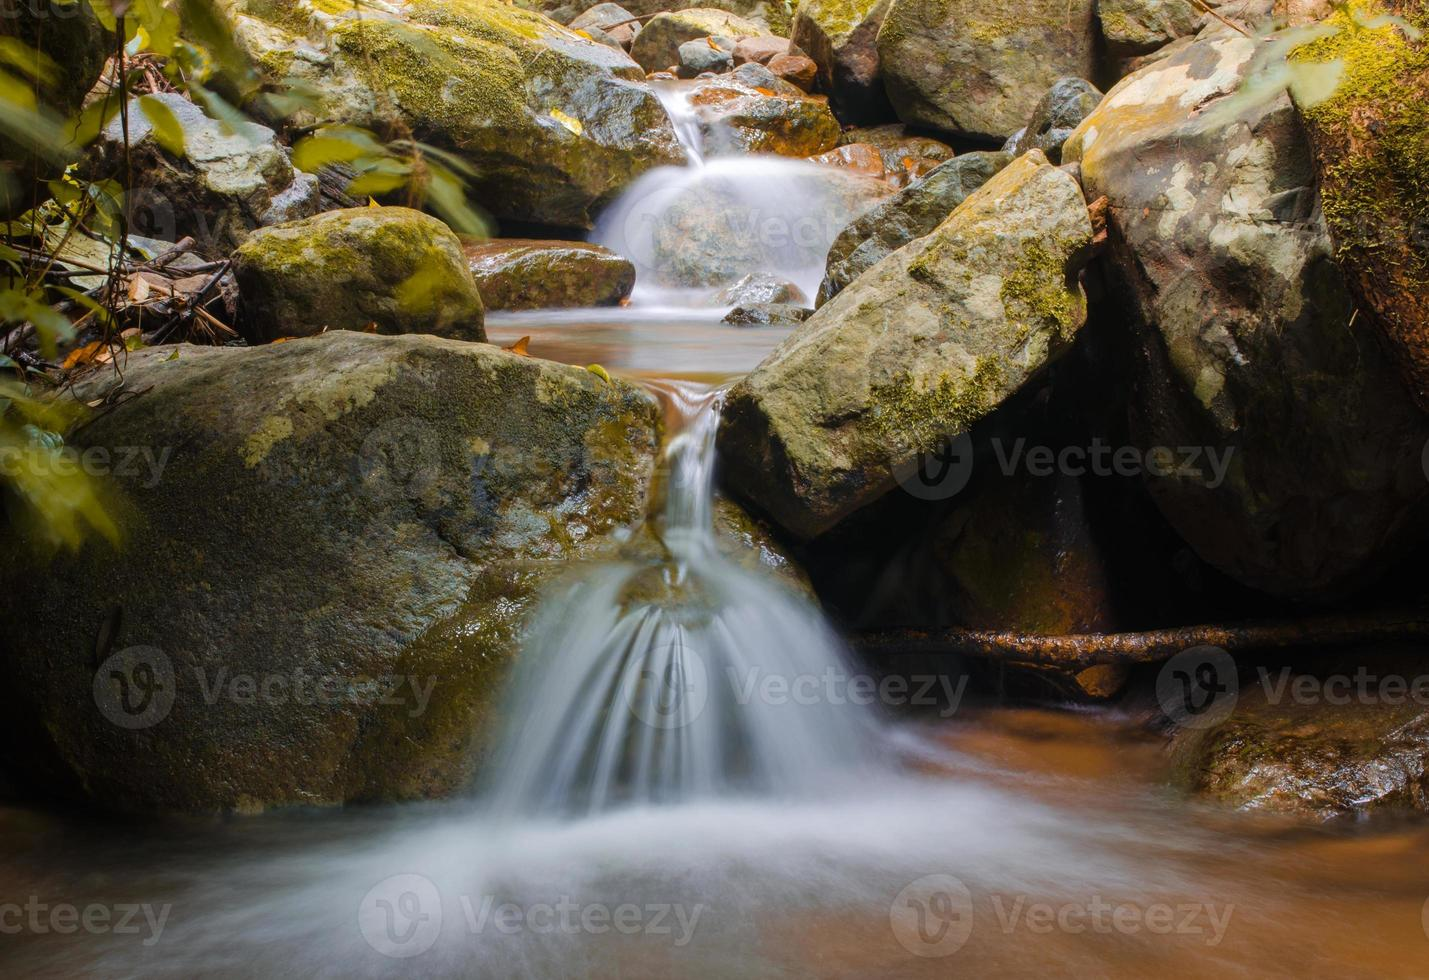 Waterfall in deep rain forest jungle at National Park, photo